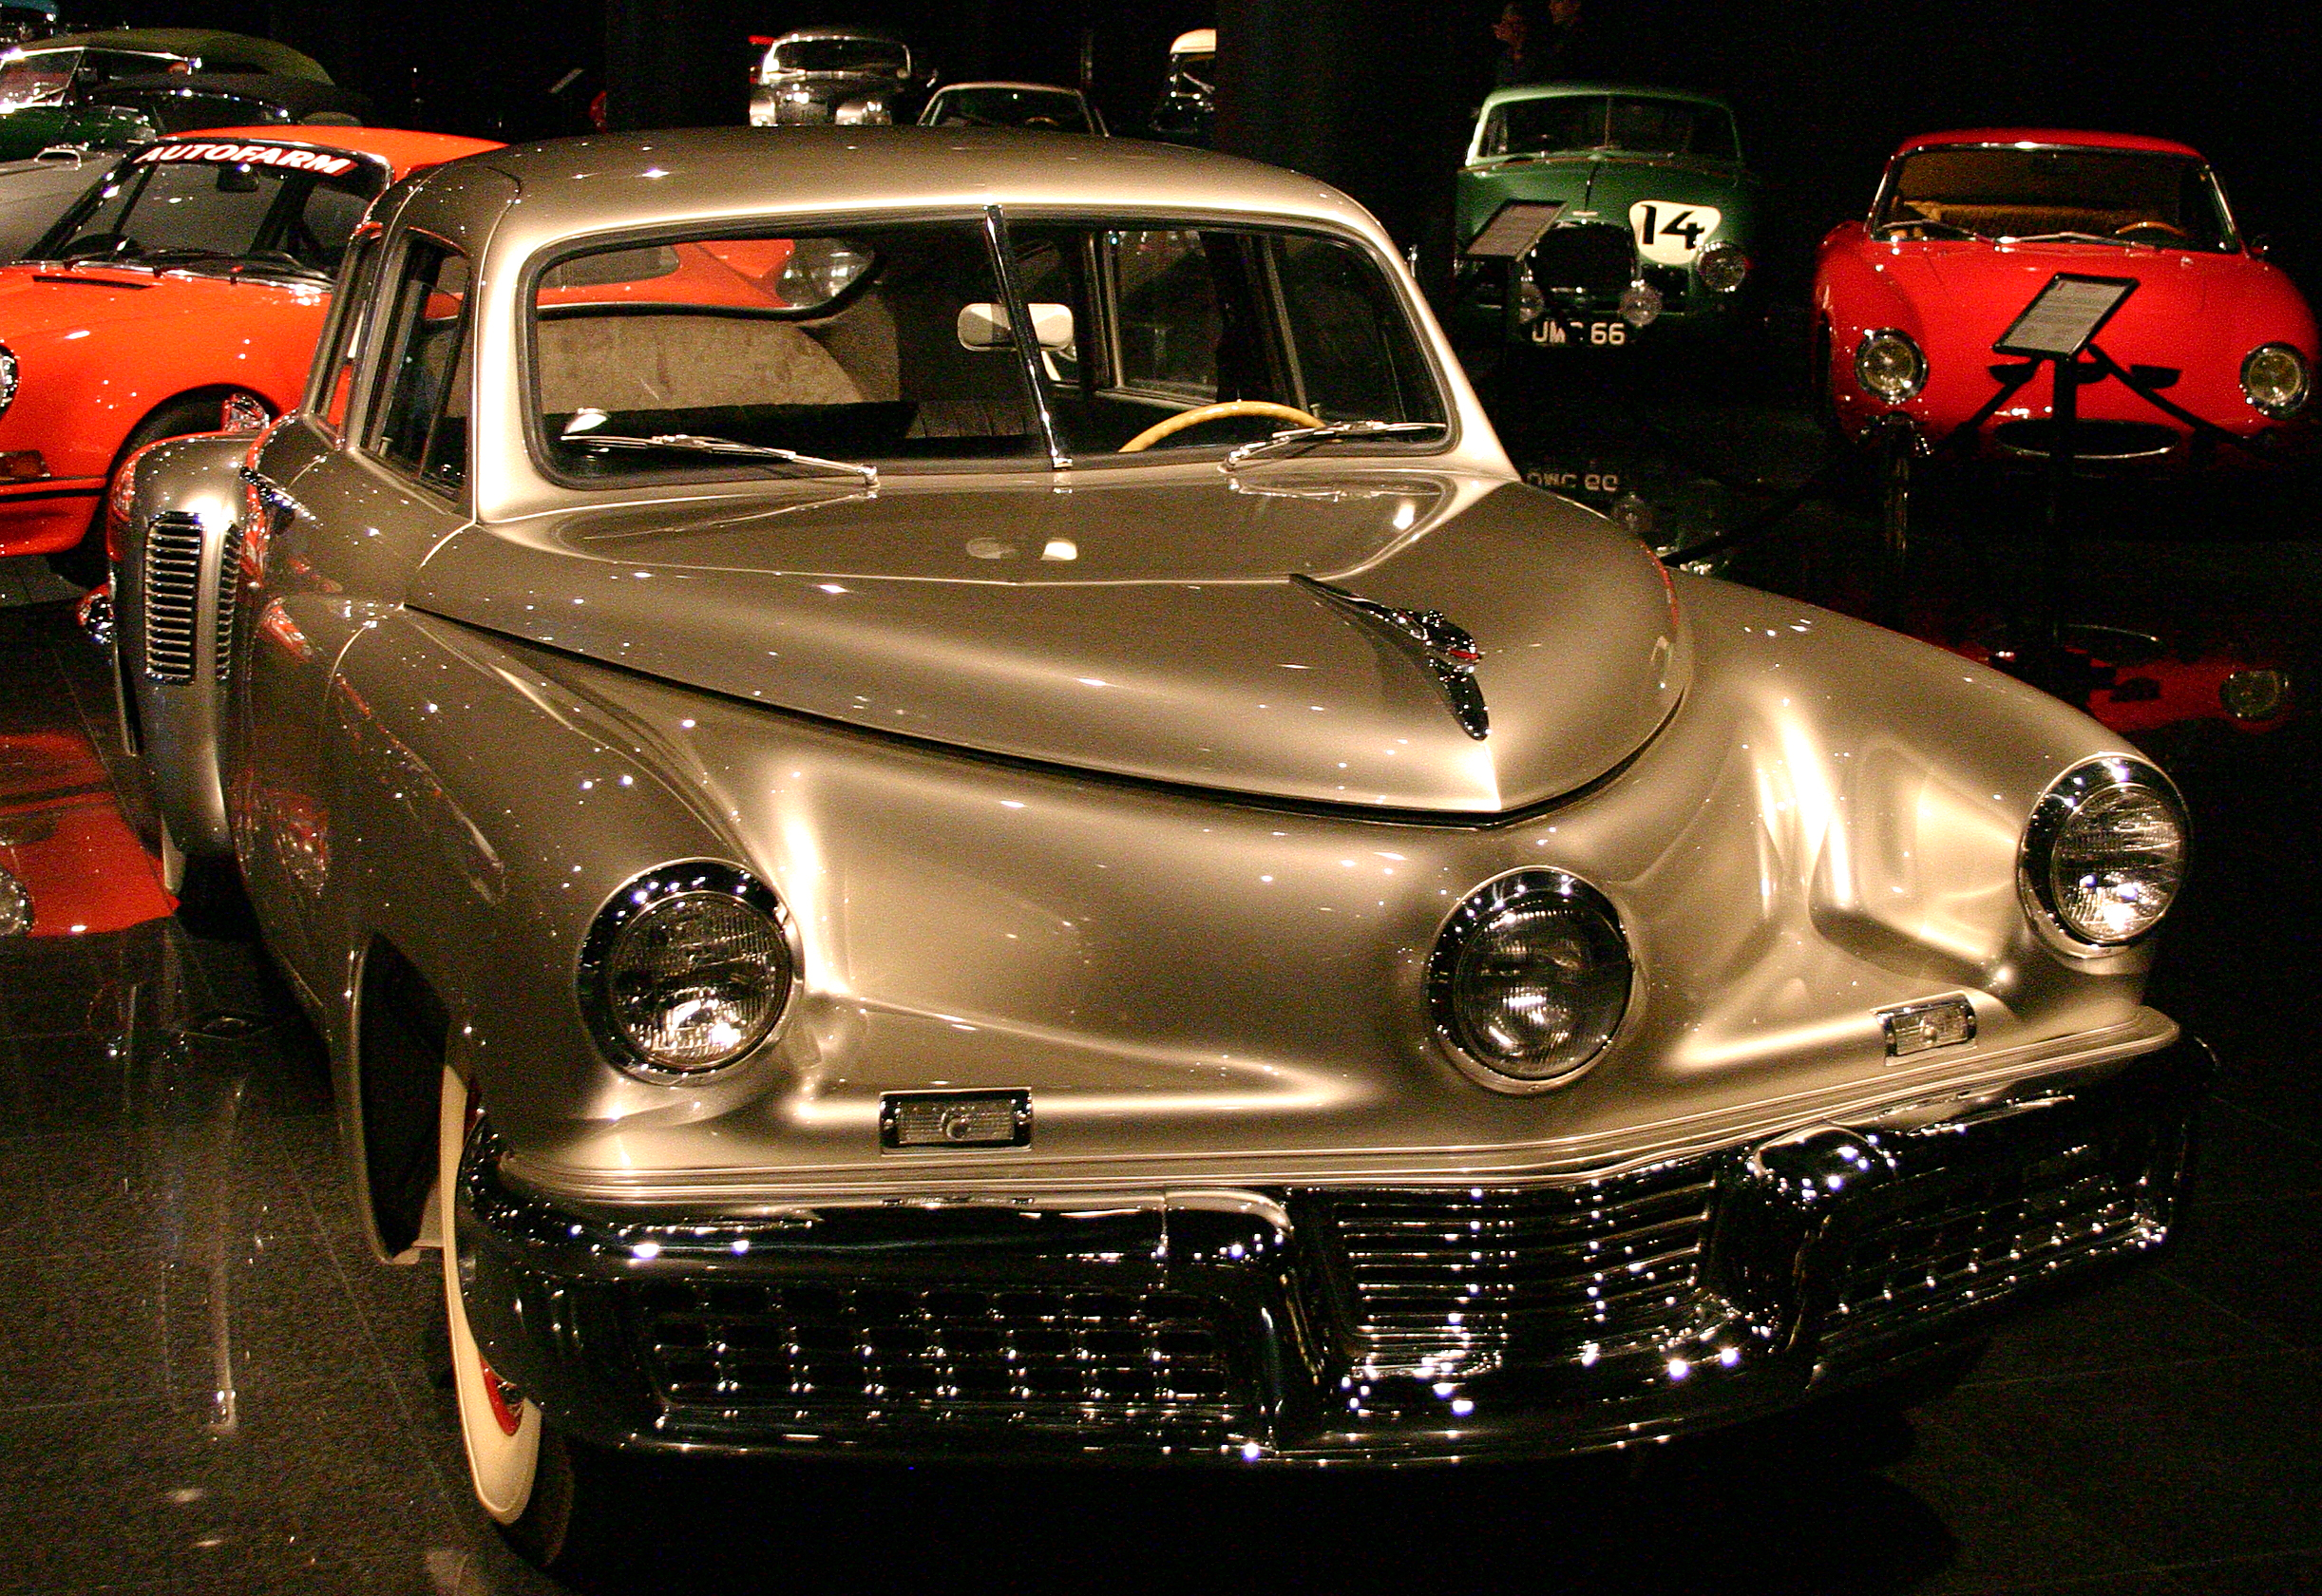 http://upload.wikimedia.org/wikipedia/commons/c/c8/1948_Tucker_Sedan_at_the_Blackhawk_Museum.jpg